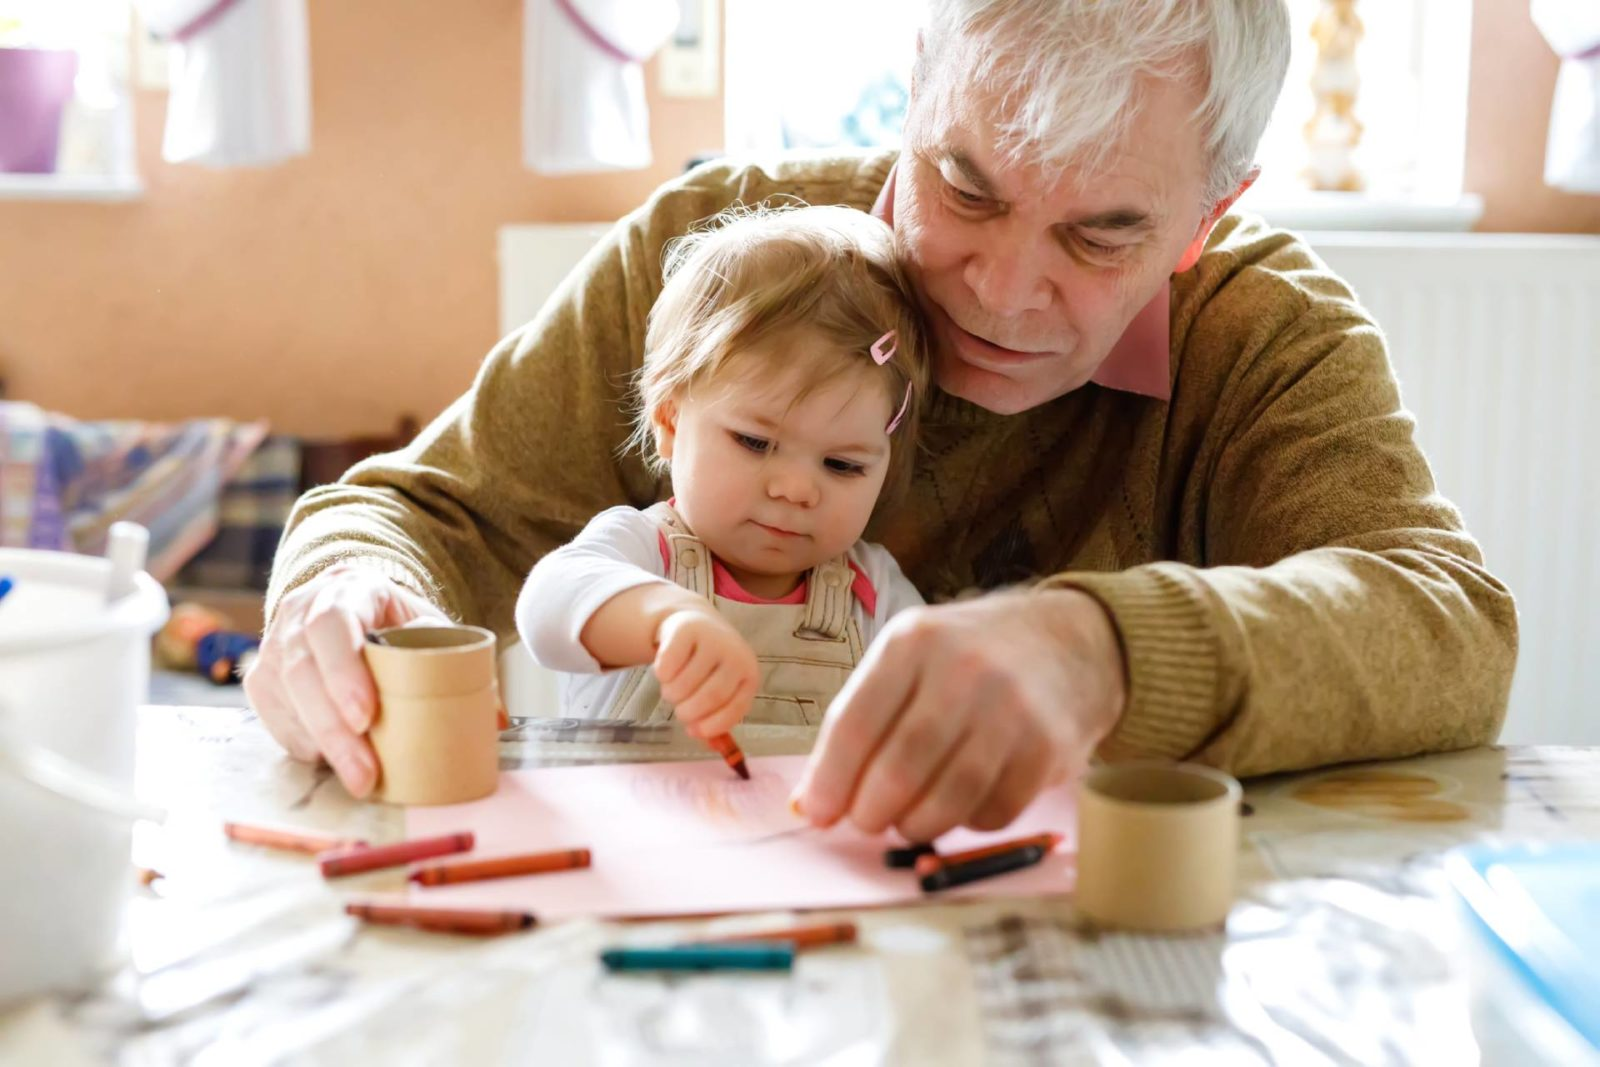 Man drawing with child